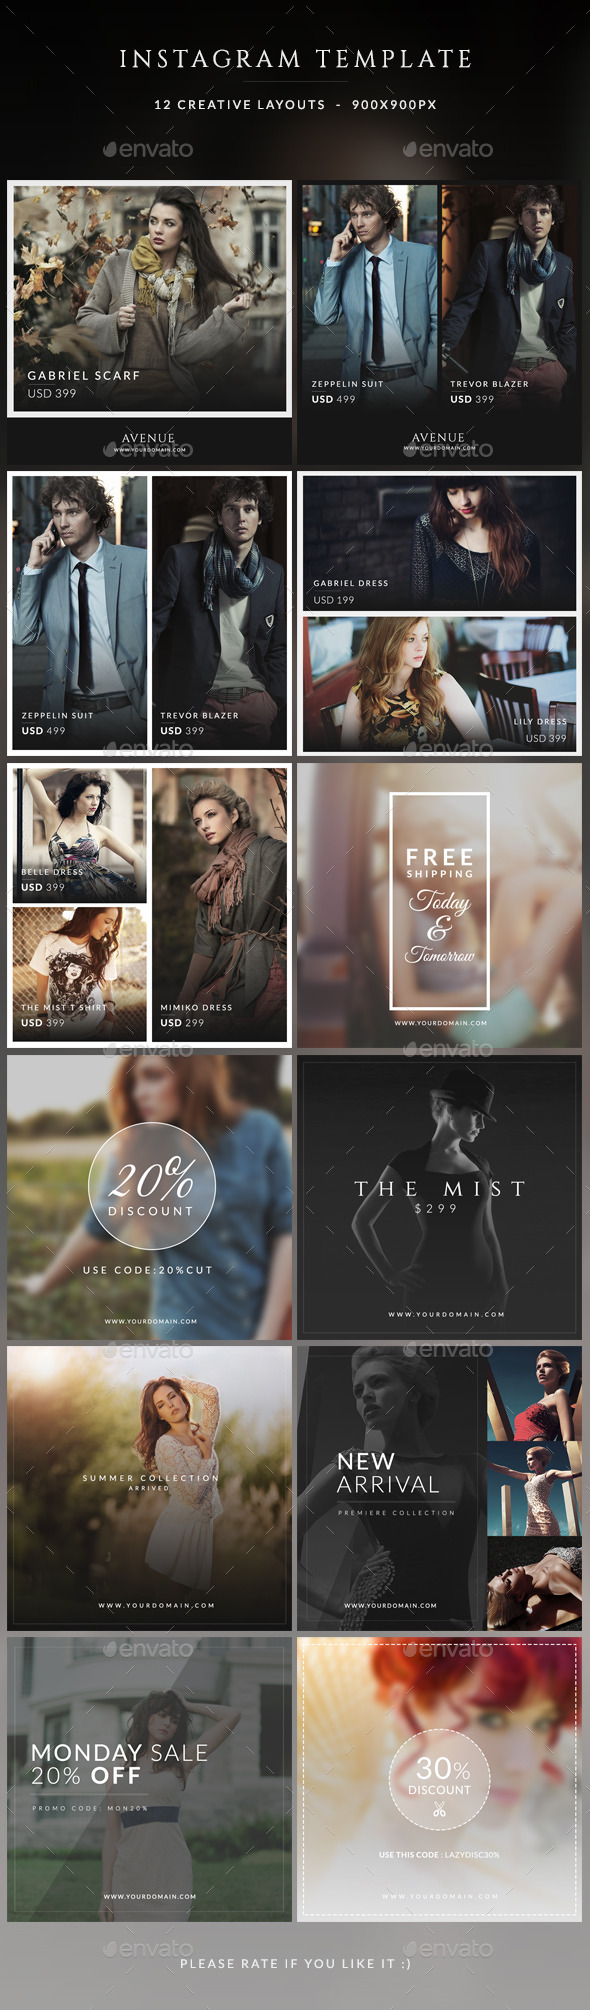 Instagram Promotions Banner - Miscellaneous Social Media